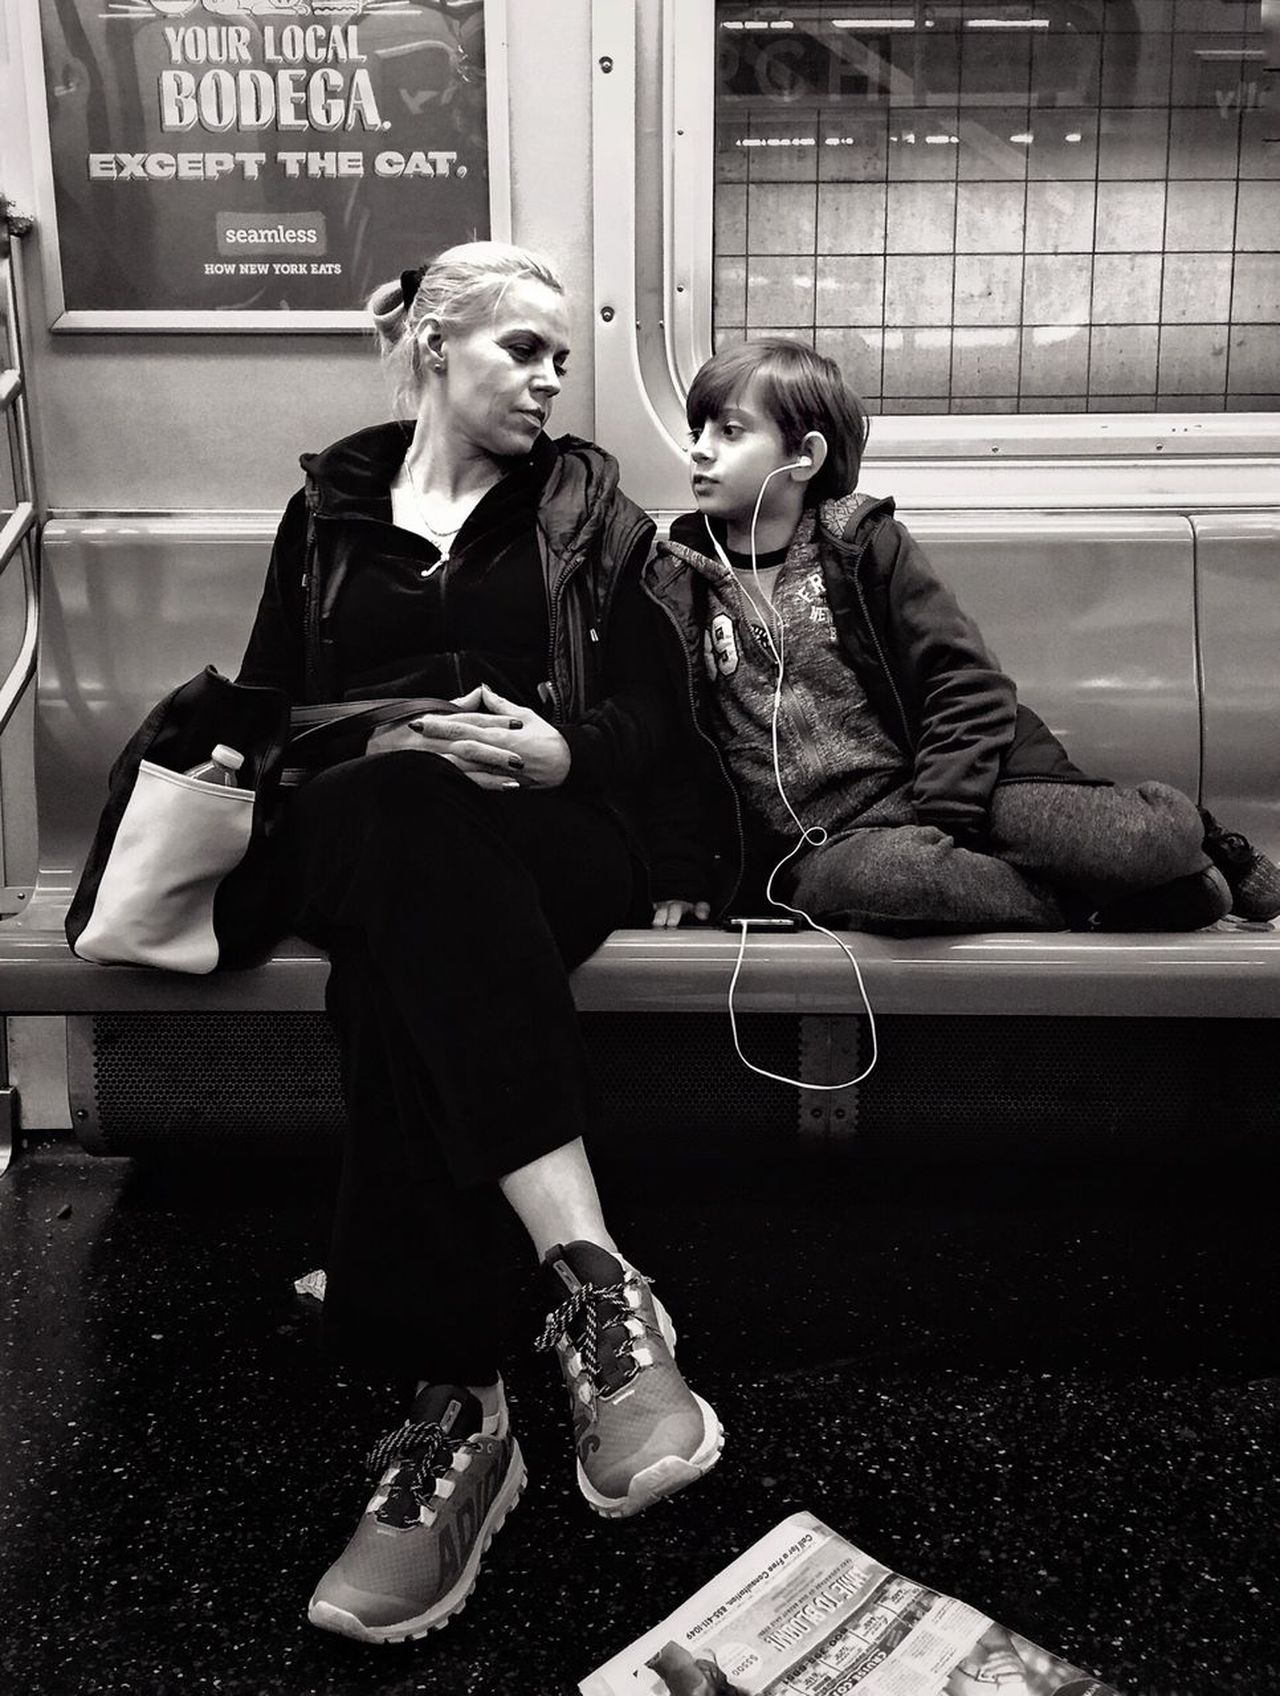 People Of New York Streetphotography Streetportrait Public Transportation Blackandwhite Bnw Two People Young Adult Young Women Real People Full Length Technology Communication Fashion Lifestyles Waiting Indoors  Well-dressed Women Wireless Technology Sitting Suit Night Warm Clothing Friendship Time